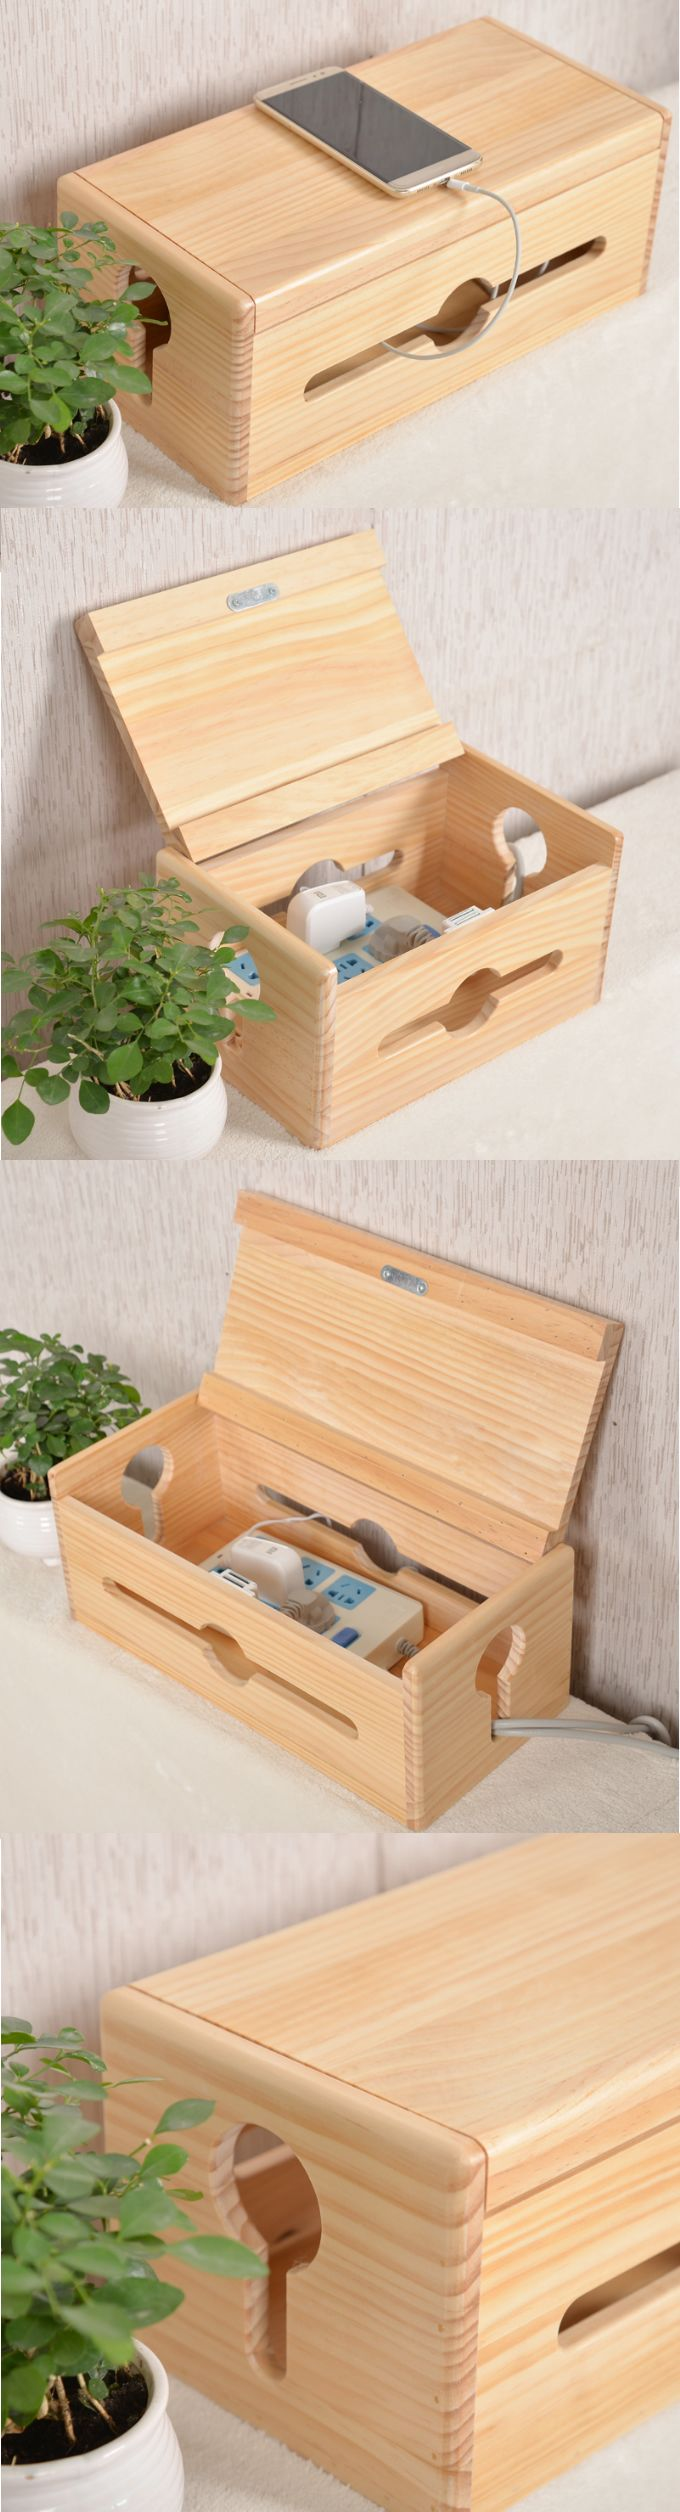 Bamboo Wooden Charge Cable Organizer Ipad Cell Phone Charging Station Dock Holder Cable Cord Organizer Cablebox Wire S Cable Organizer Wooden Cord Organization